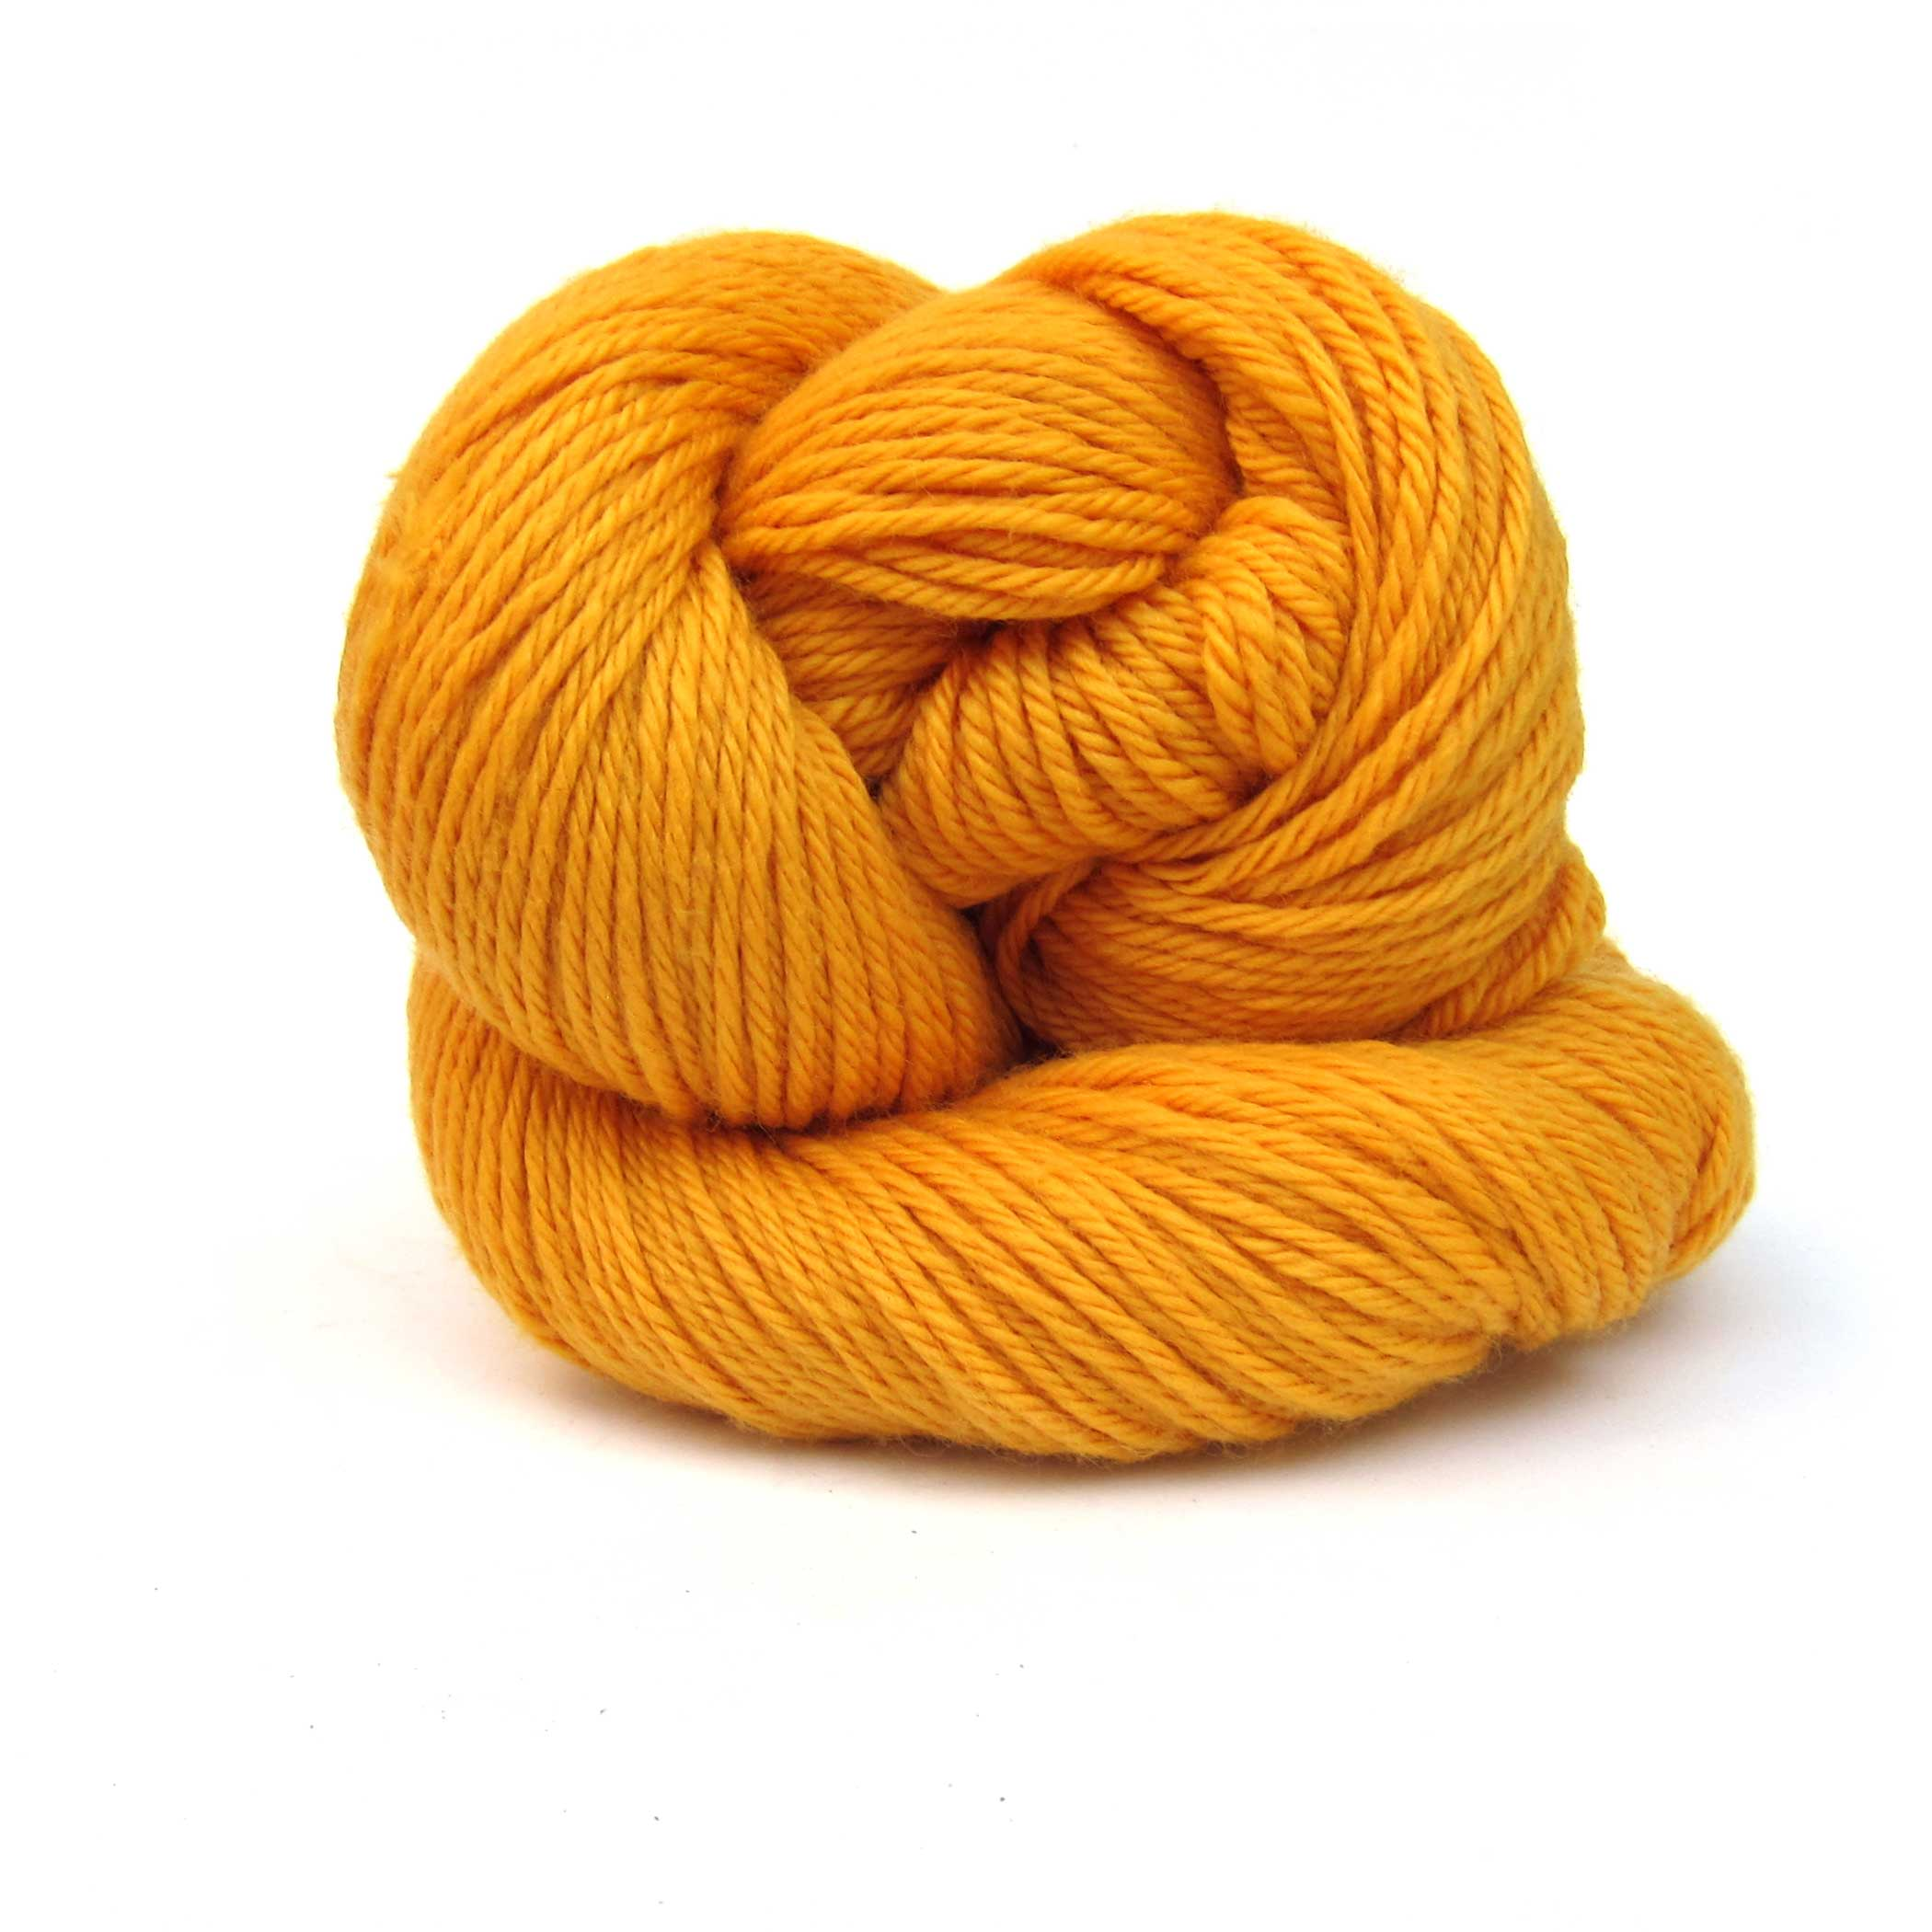 Clementine Louet Gems 100% Merino Superwash Yarn